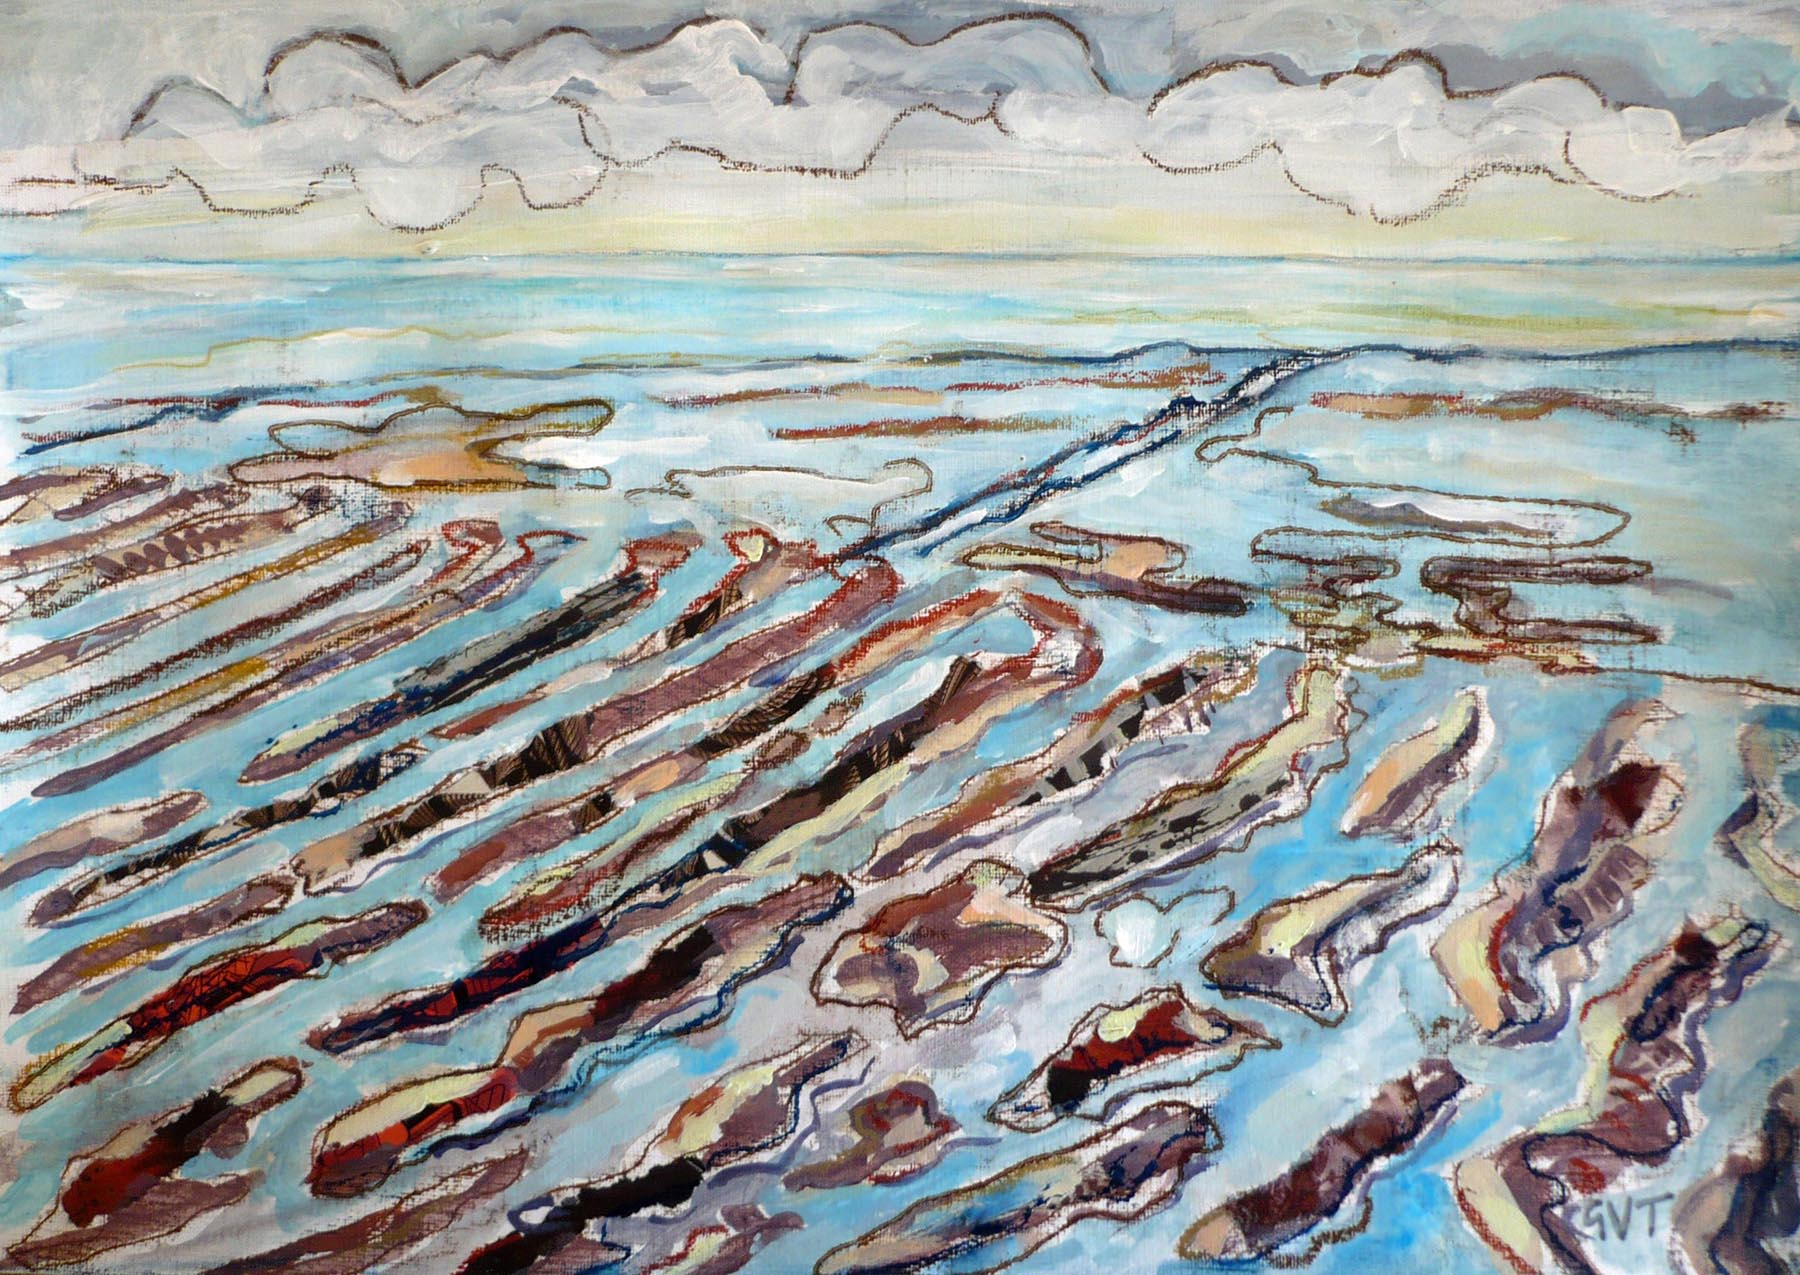 Essex Coast 1 , Mixed media on paper, 27 x 42 cm